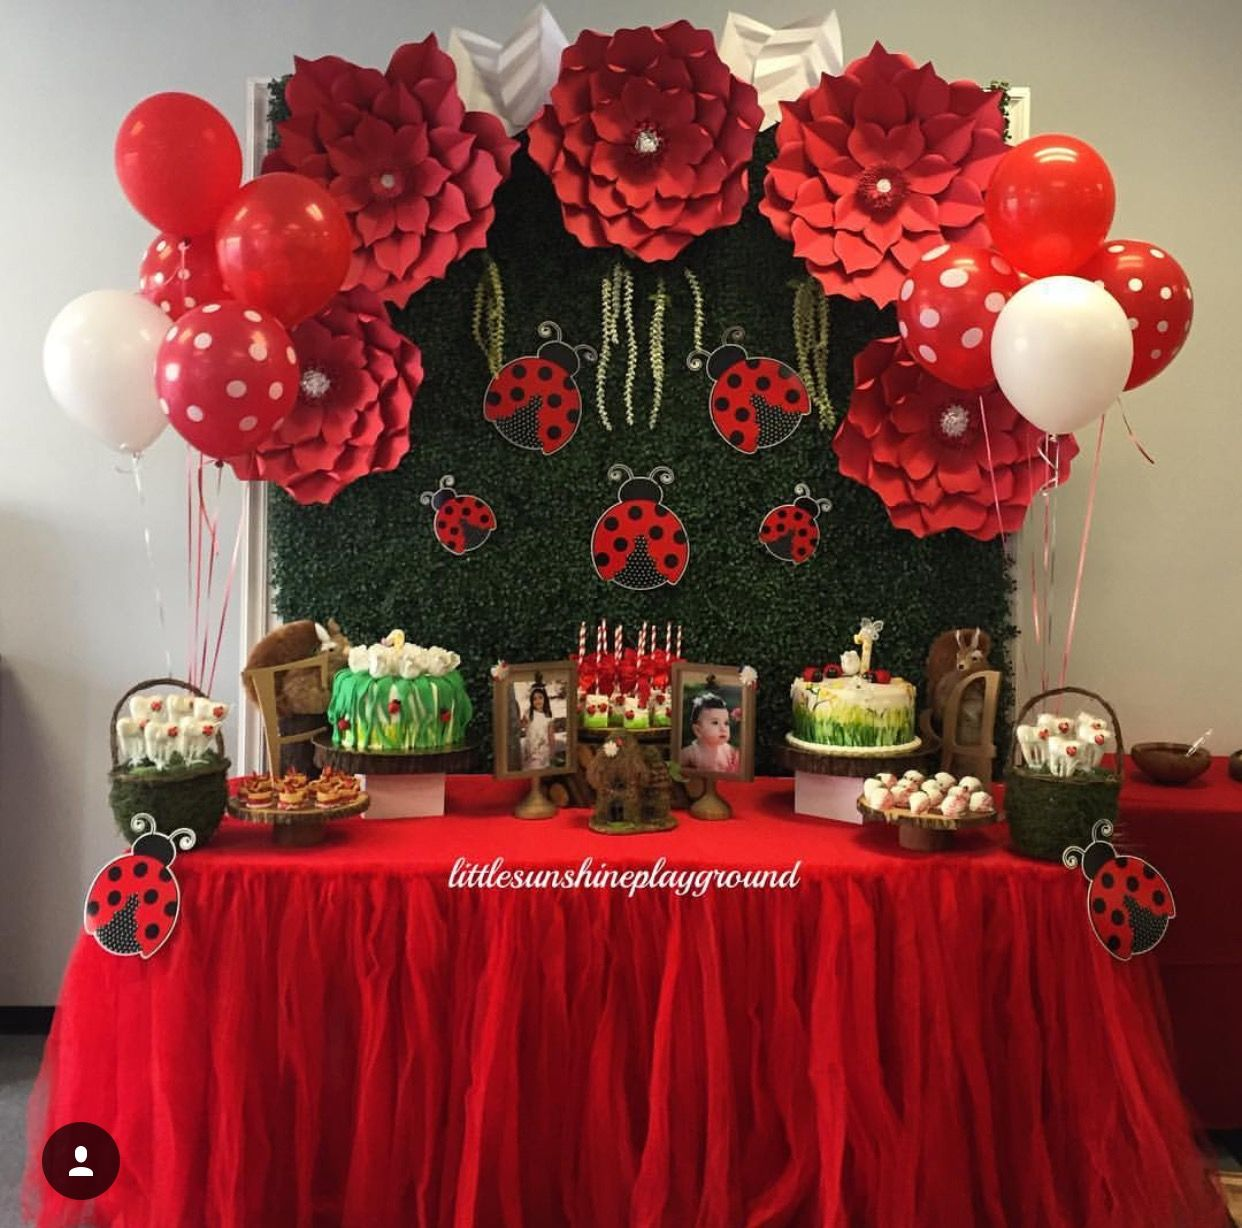 Pin by tiana carrillo on party pinterest ladybug lady - Carrillo decoracion ...